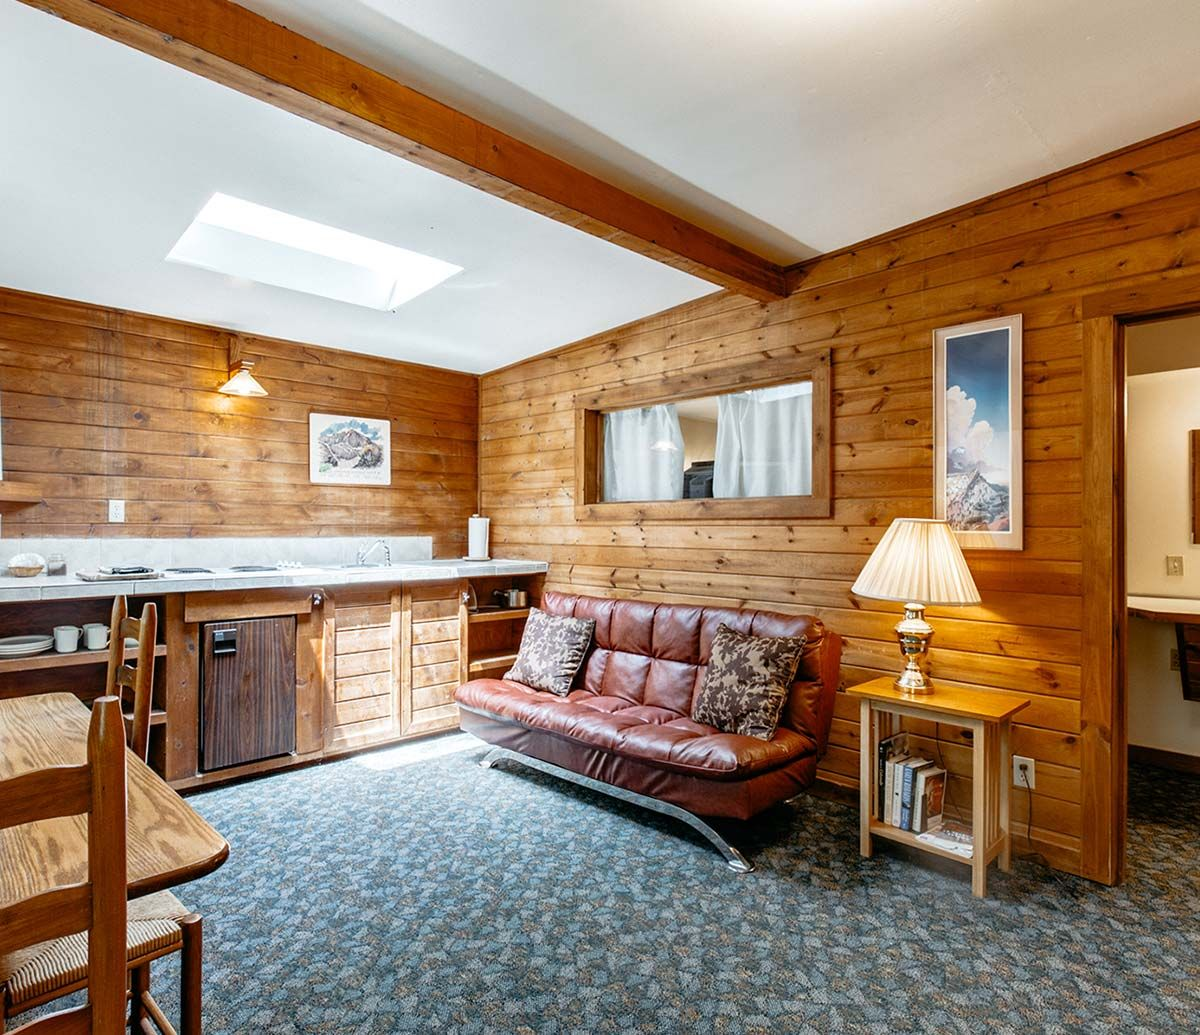 Adventure Lodging In Boulder Colorado Awaits Lodging Adventure Vans Experiences And Events All Available At The A Lodge In 2020 Lodges Bouldering